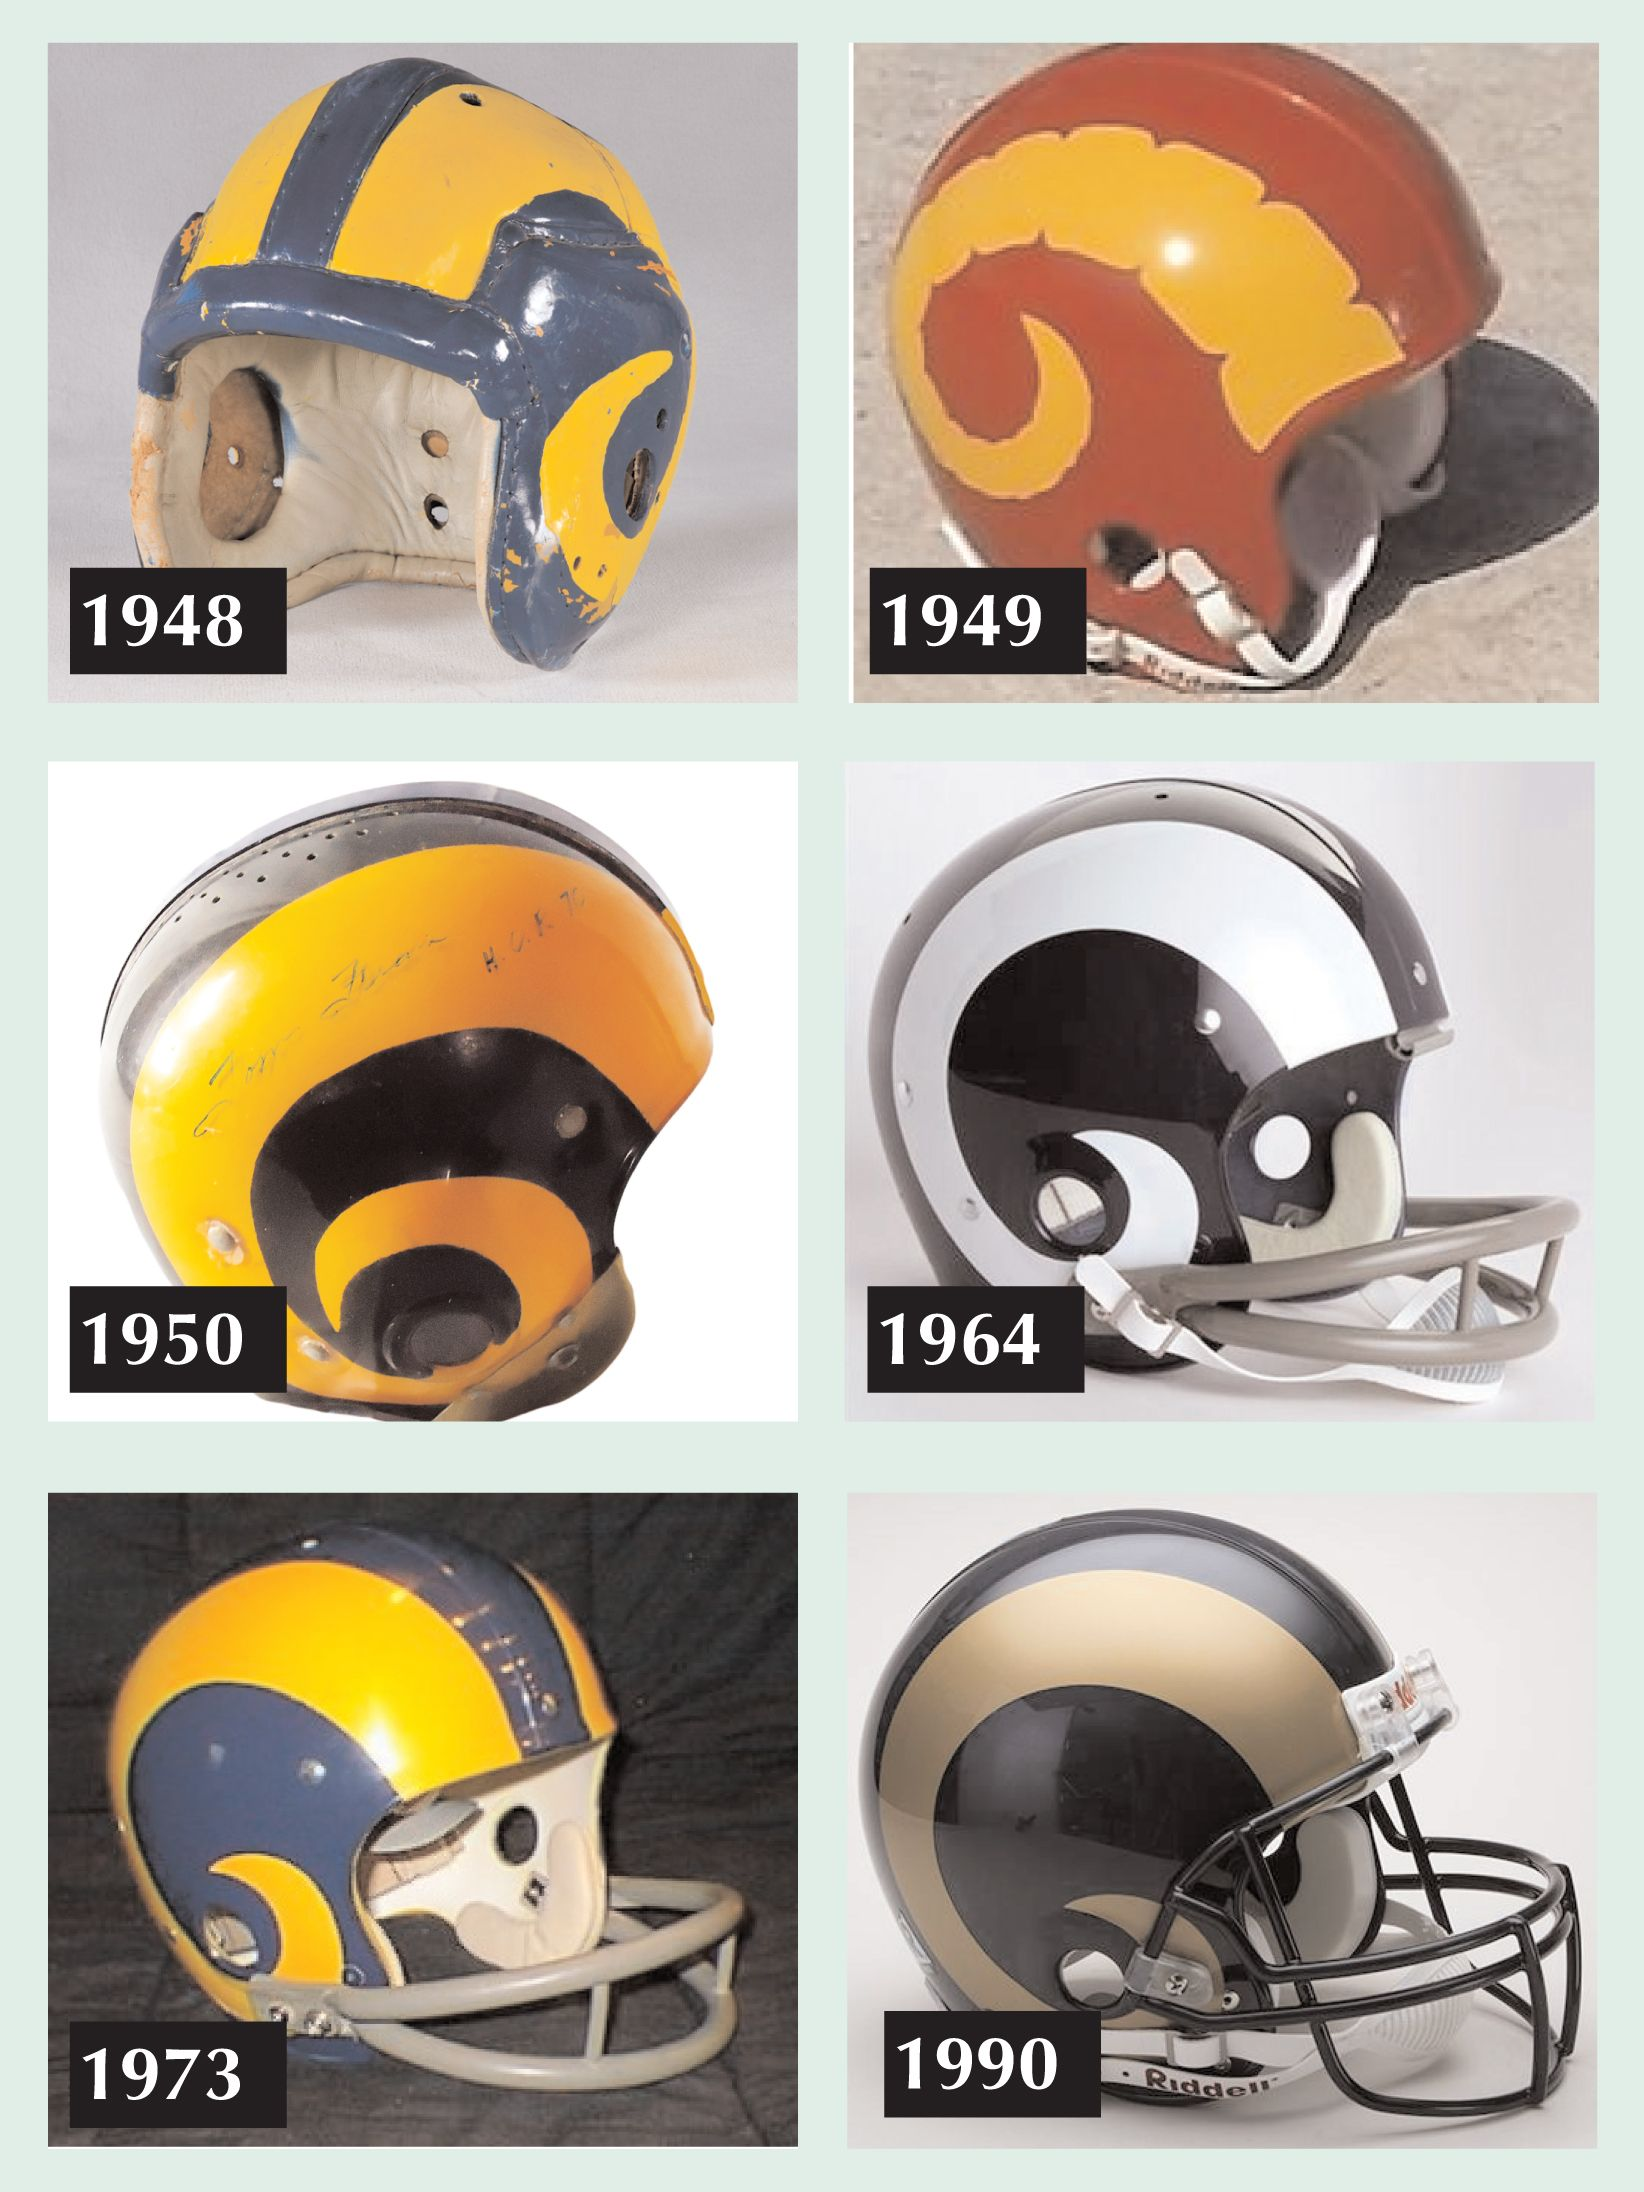 Fullback Fred Gehrke of the Cleveland Rams designed the